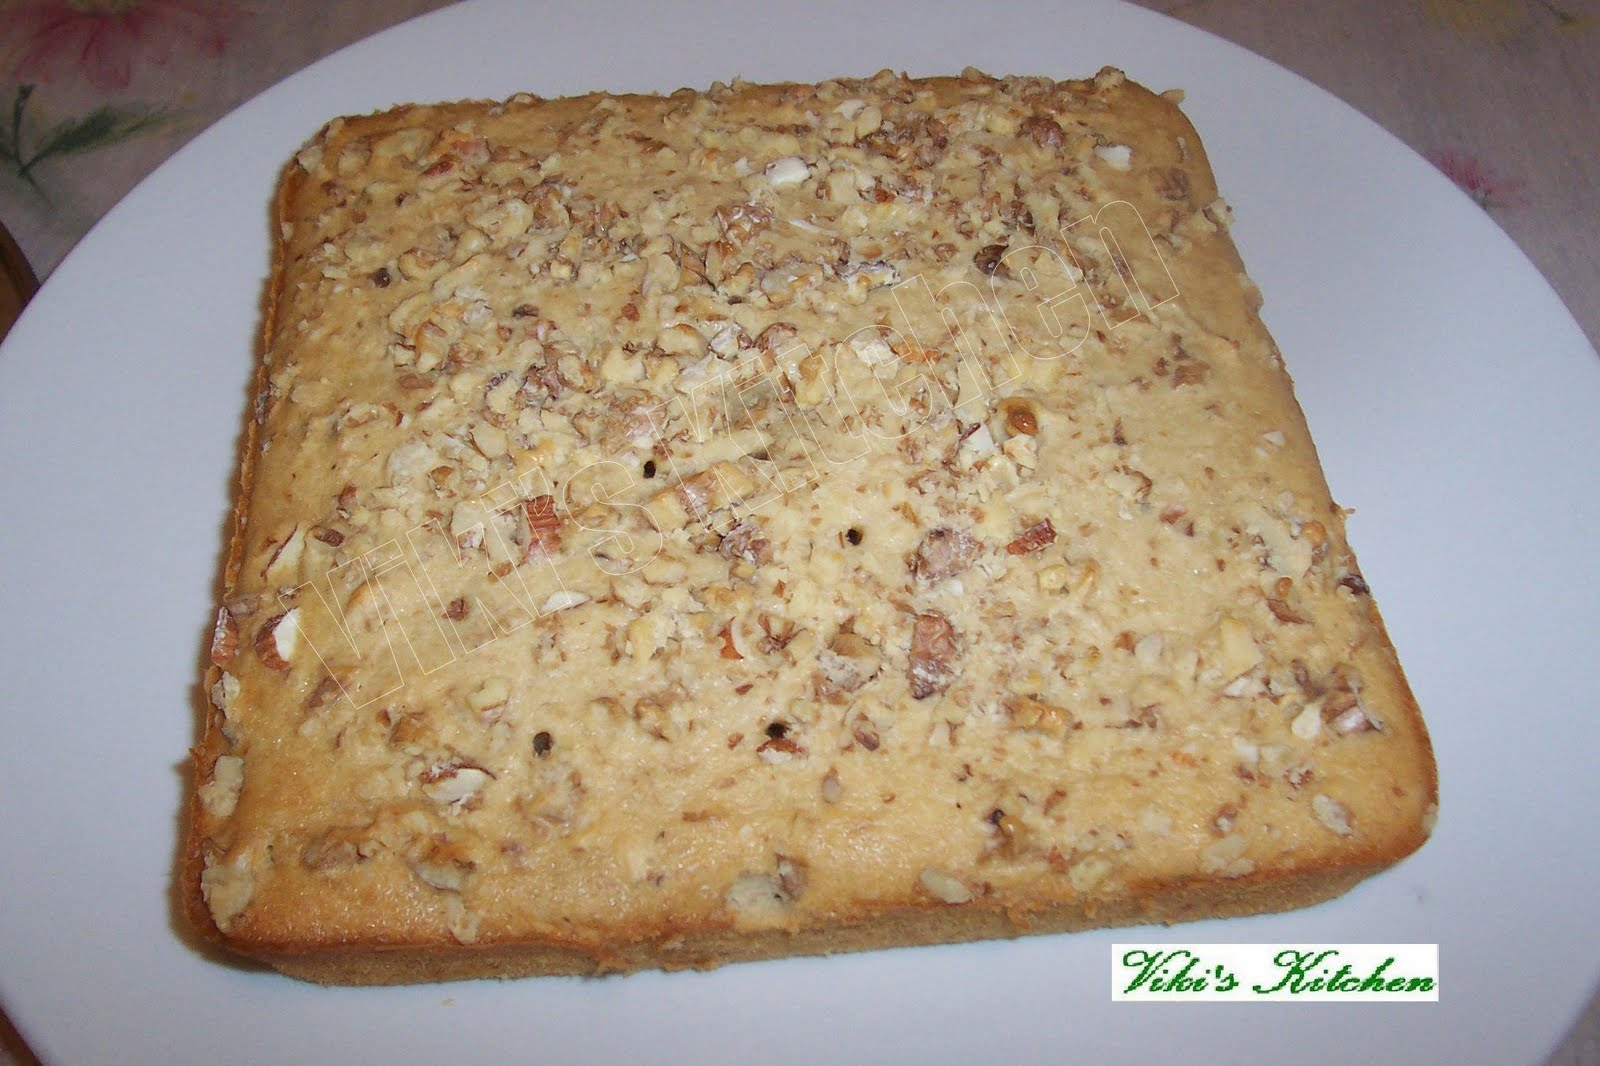 Viki 's Kitchen: Banana Walnut cake